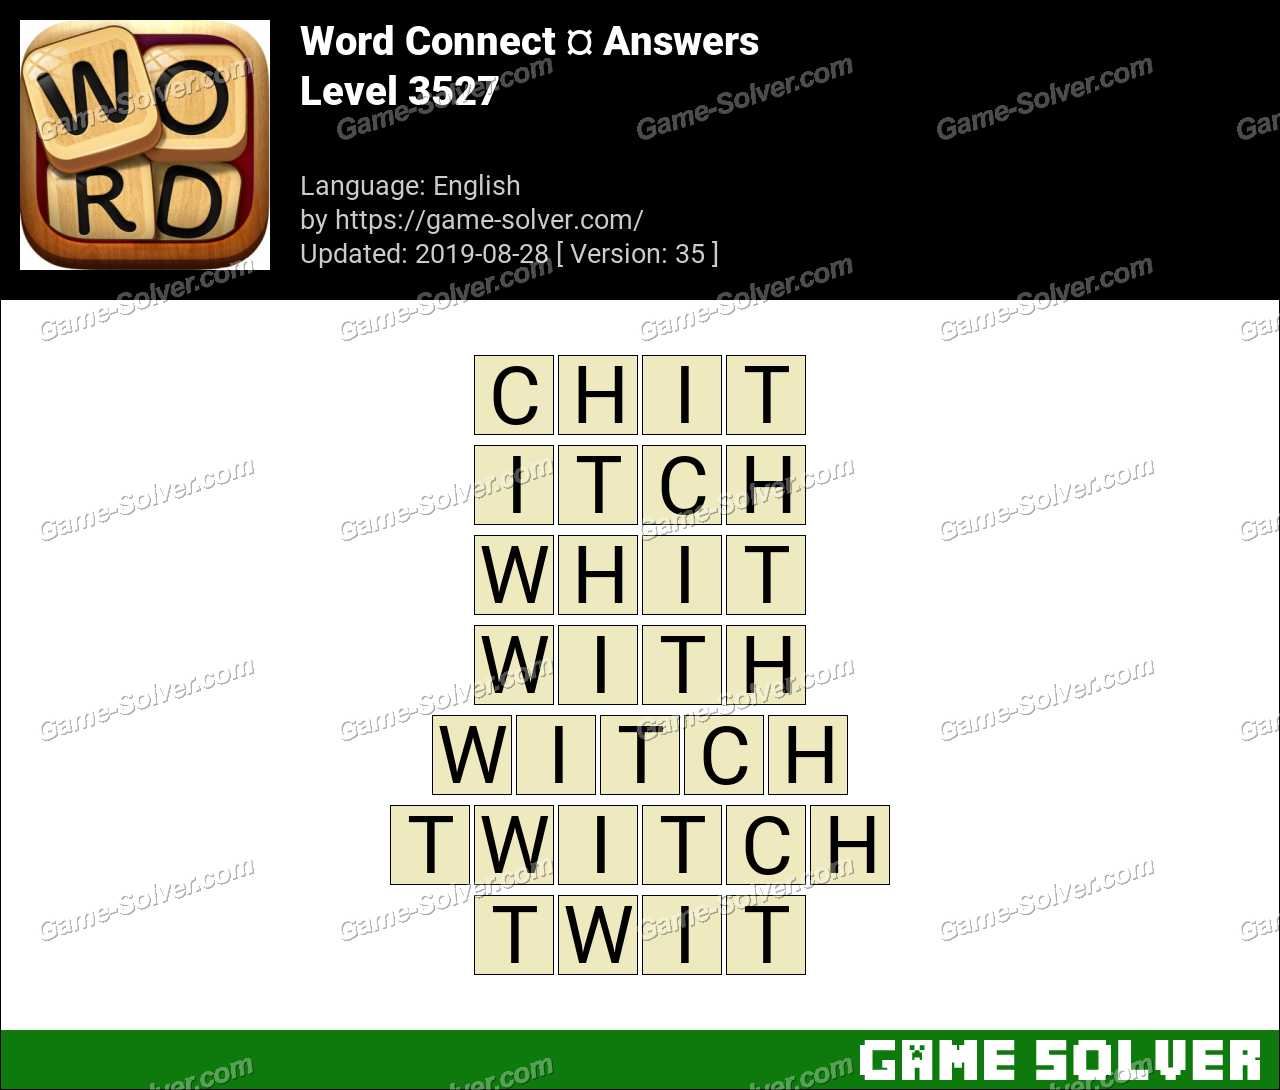 Word Connect Level 3527 Answers